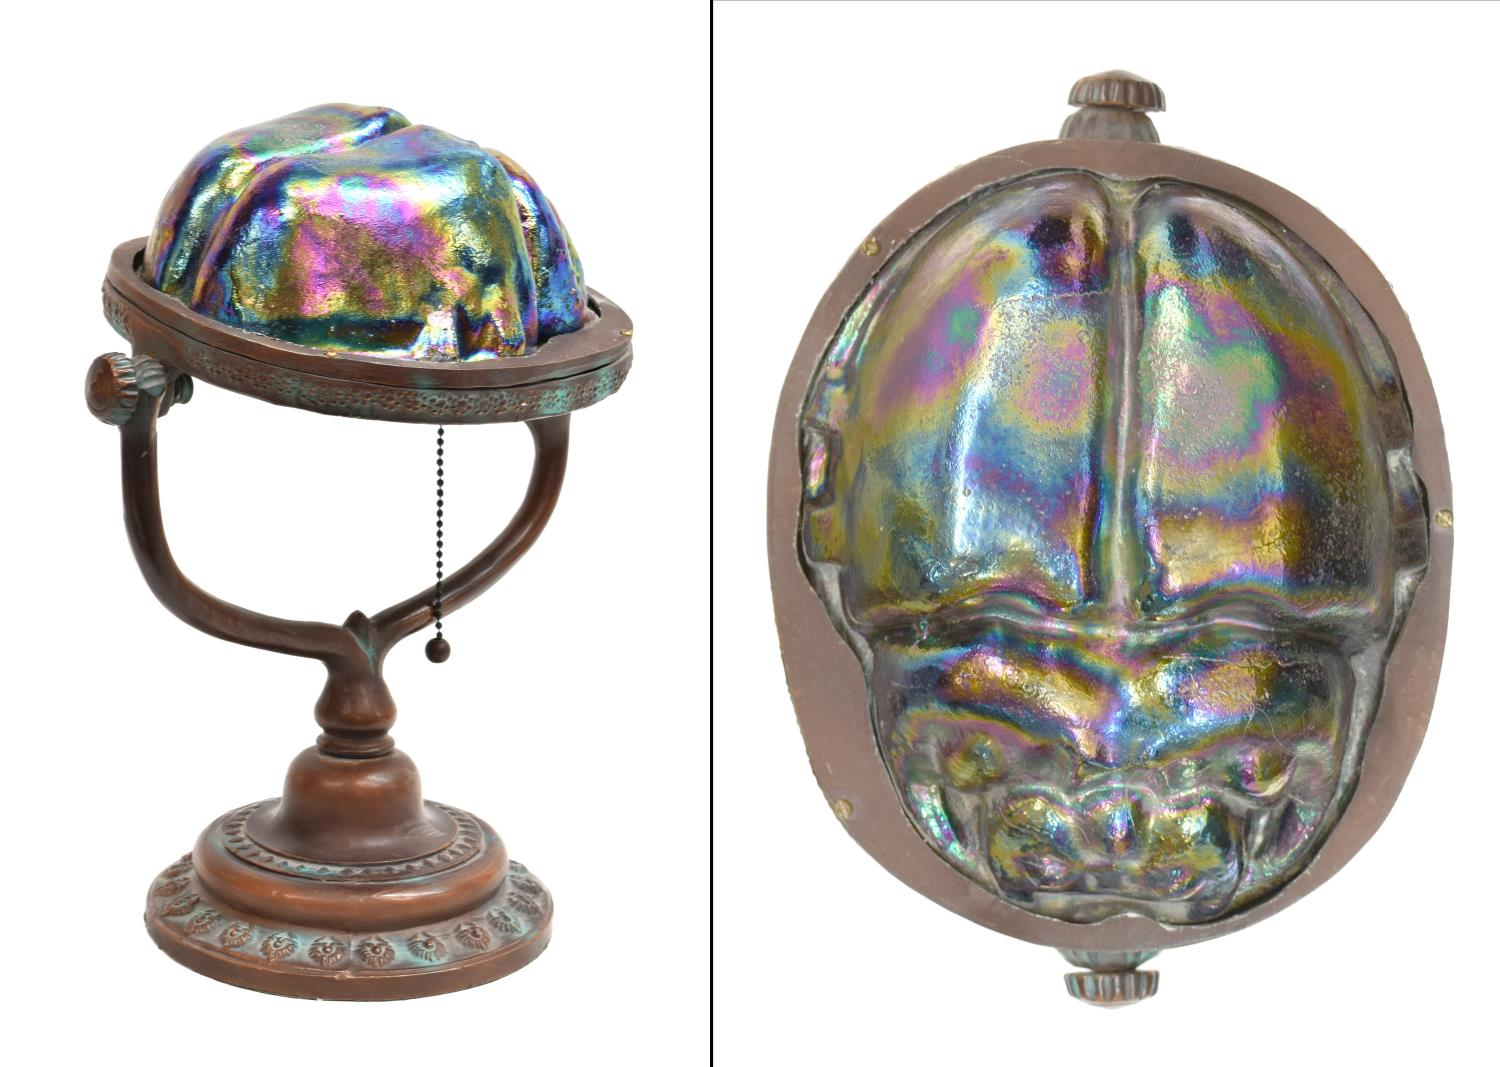 Tiffany style bronze stained glass scarab lamp may estates auction 2016 day 2 austin - Lamp may day ...